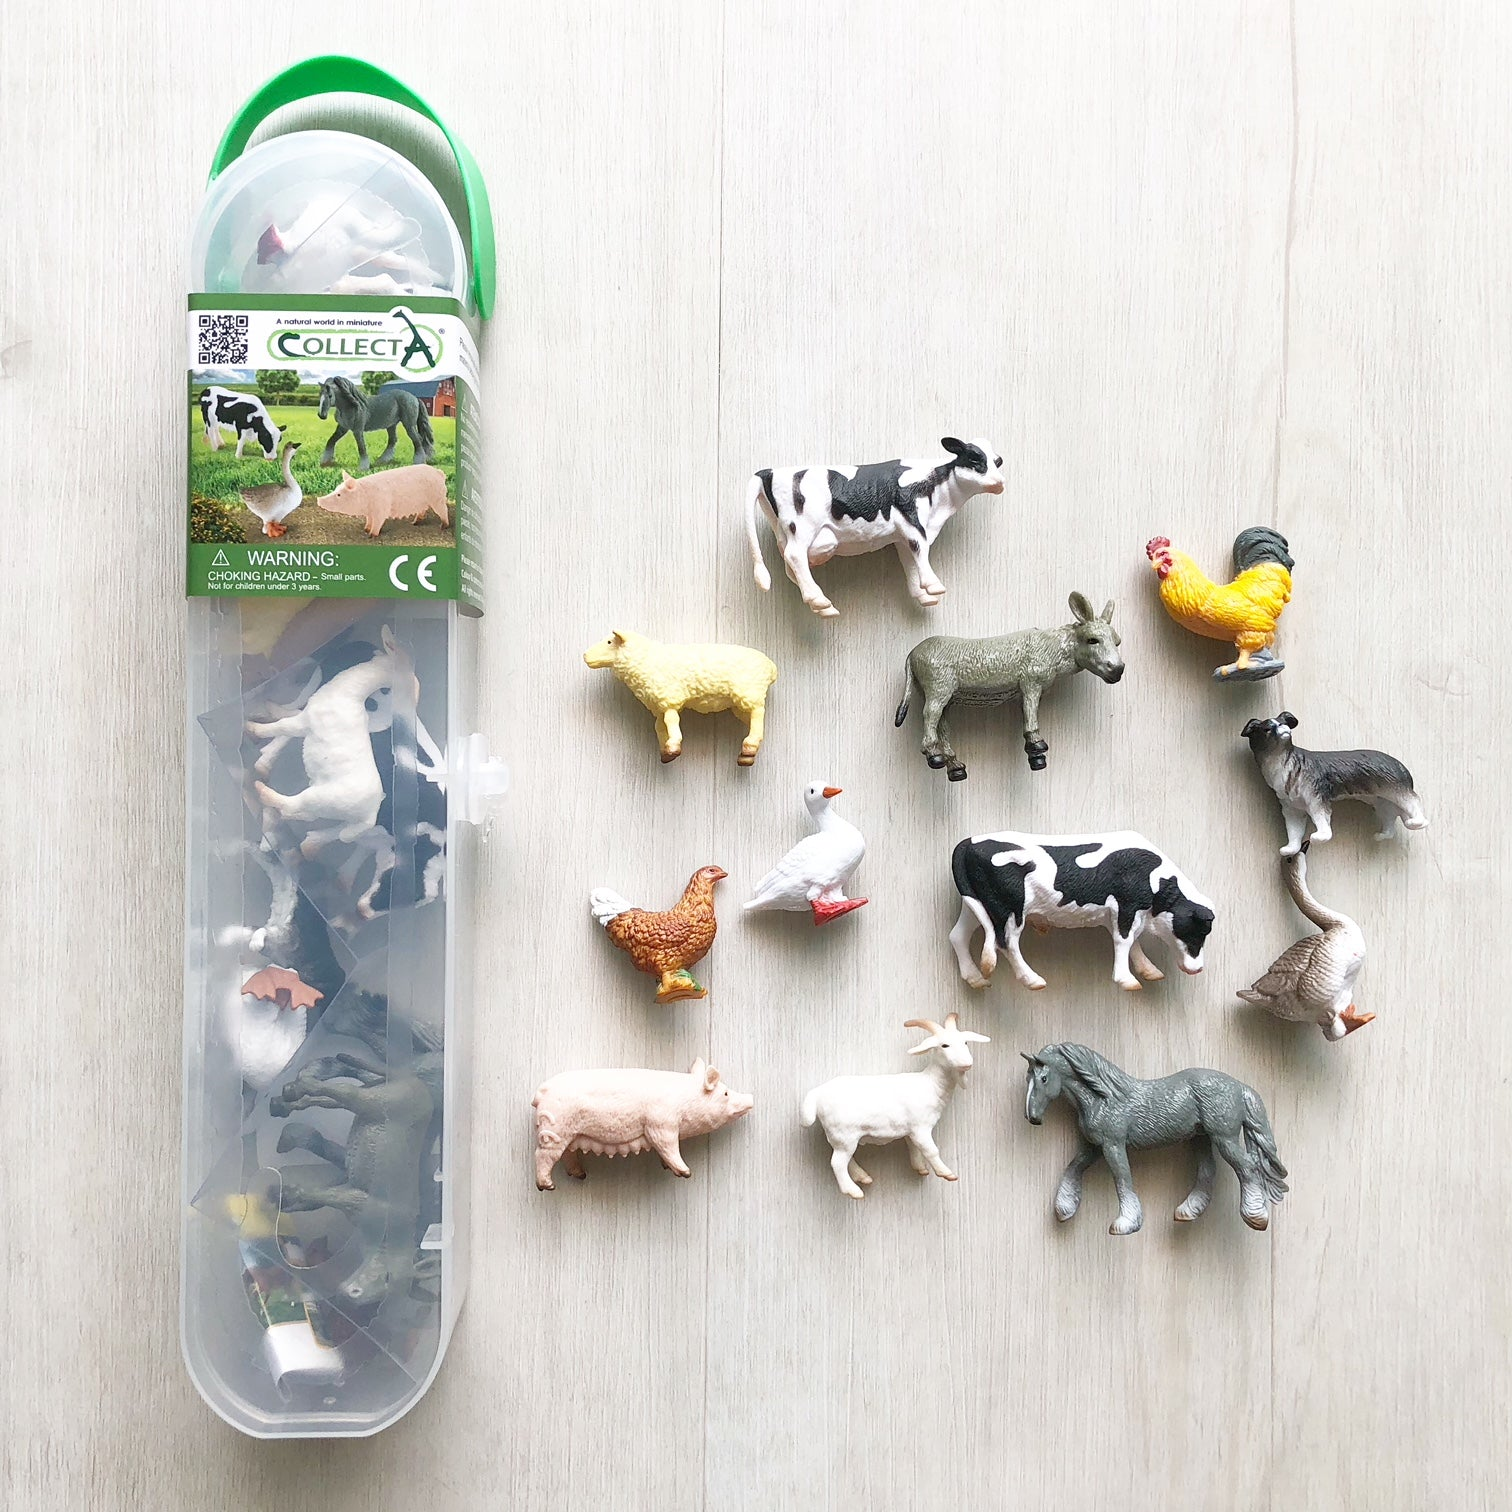 PRE-ORDER CollectA Box of Mini Farm Life *ETA july*